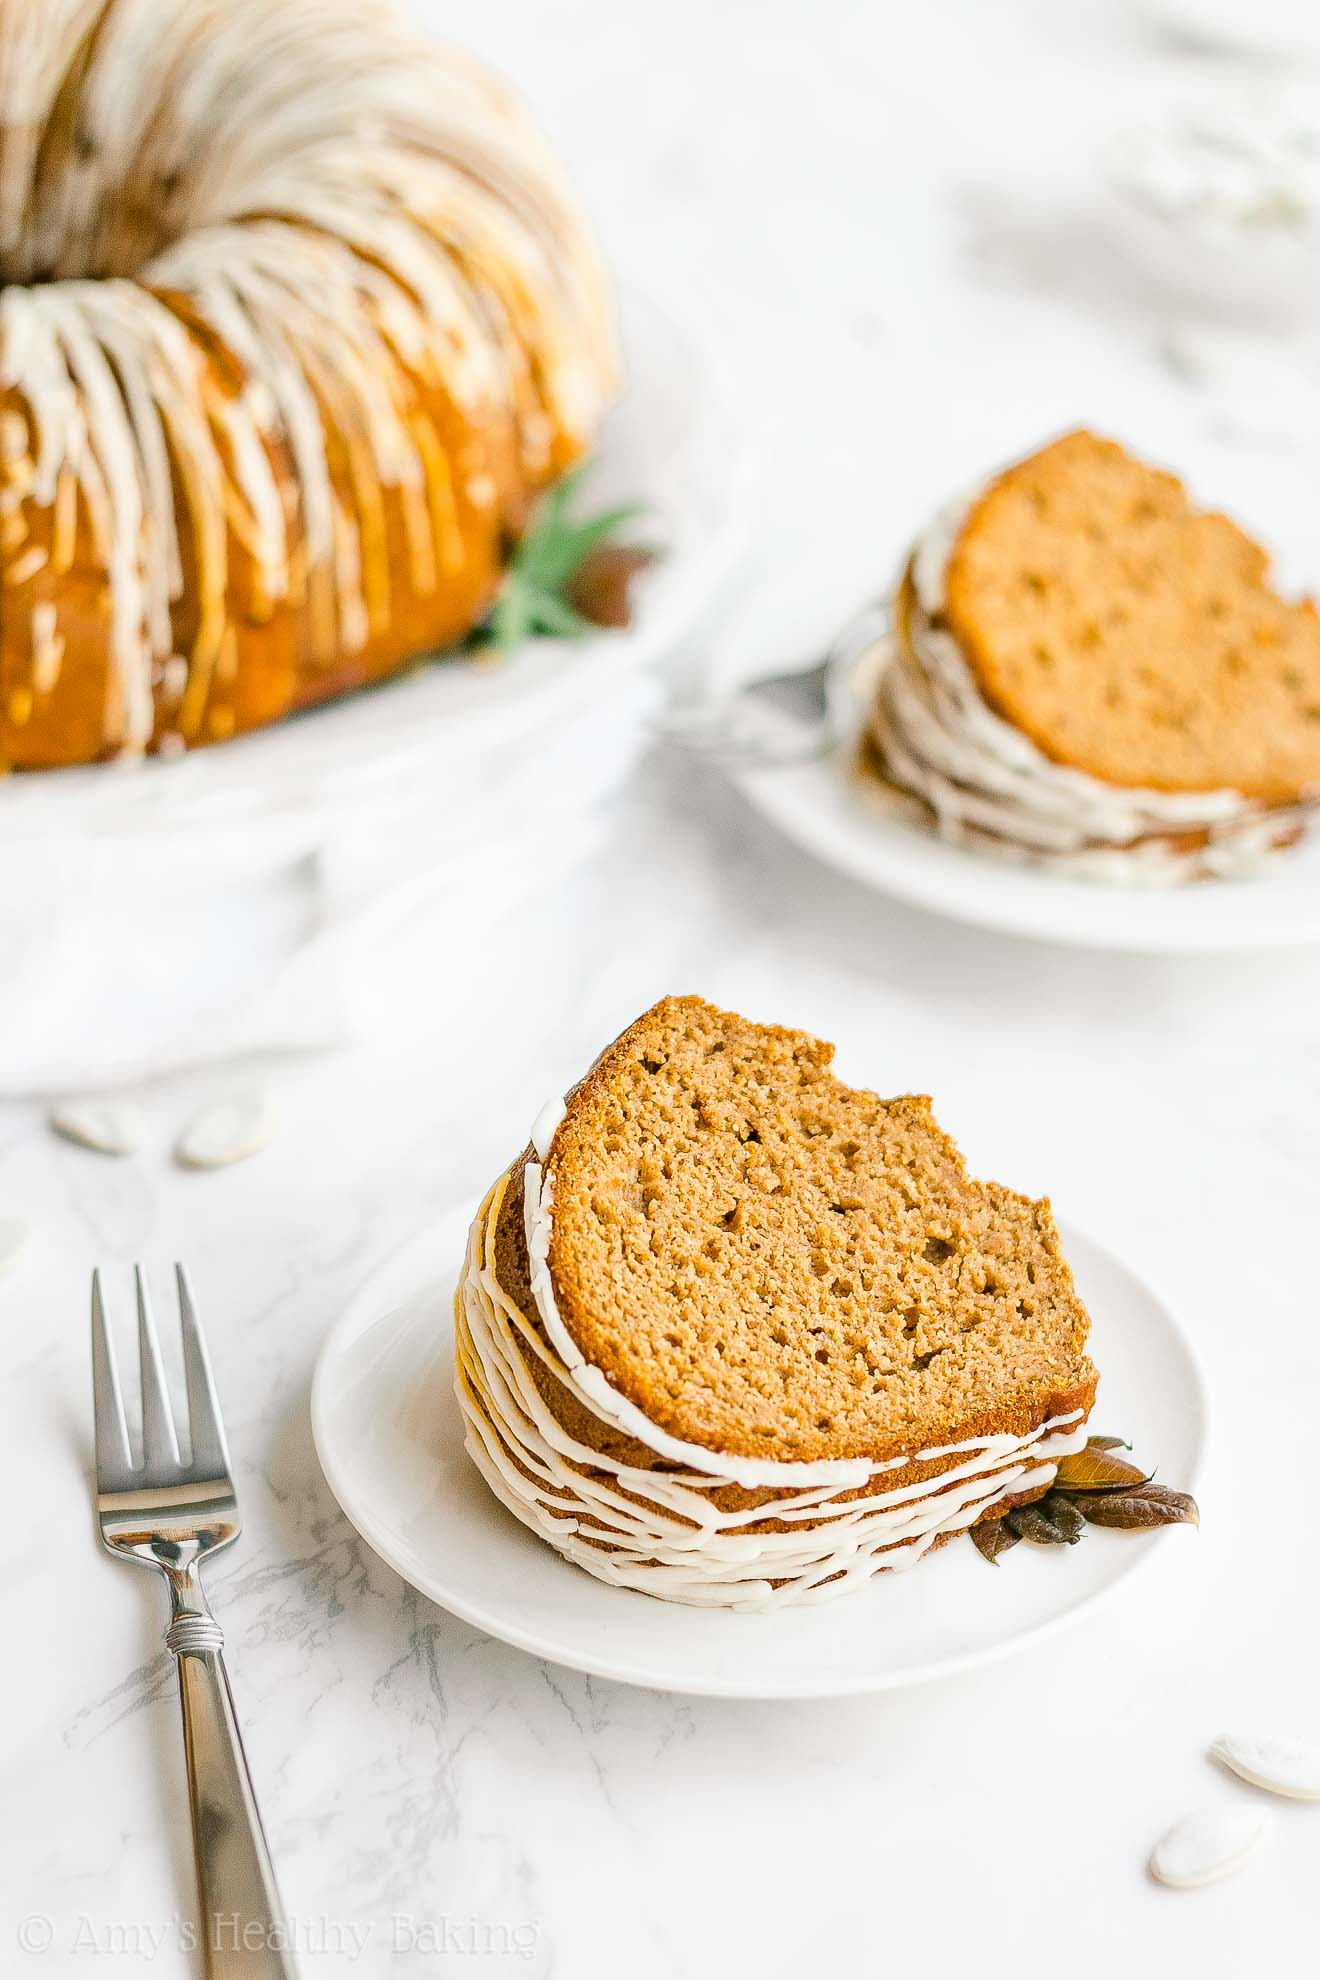 Healthy Clean Eating Low Calorie Pumpkin Bundt Cake Made with Stevia